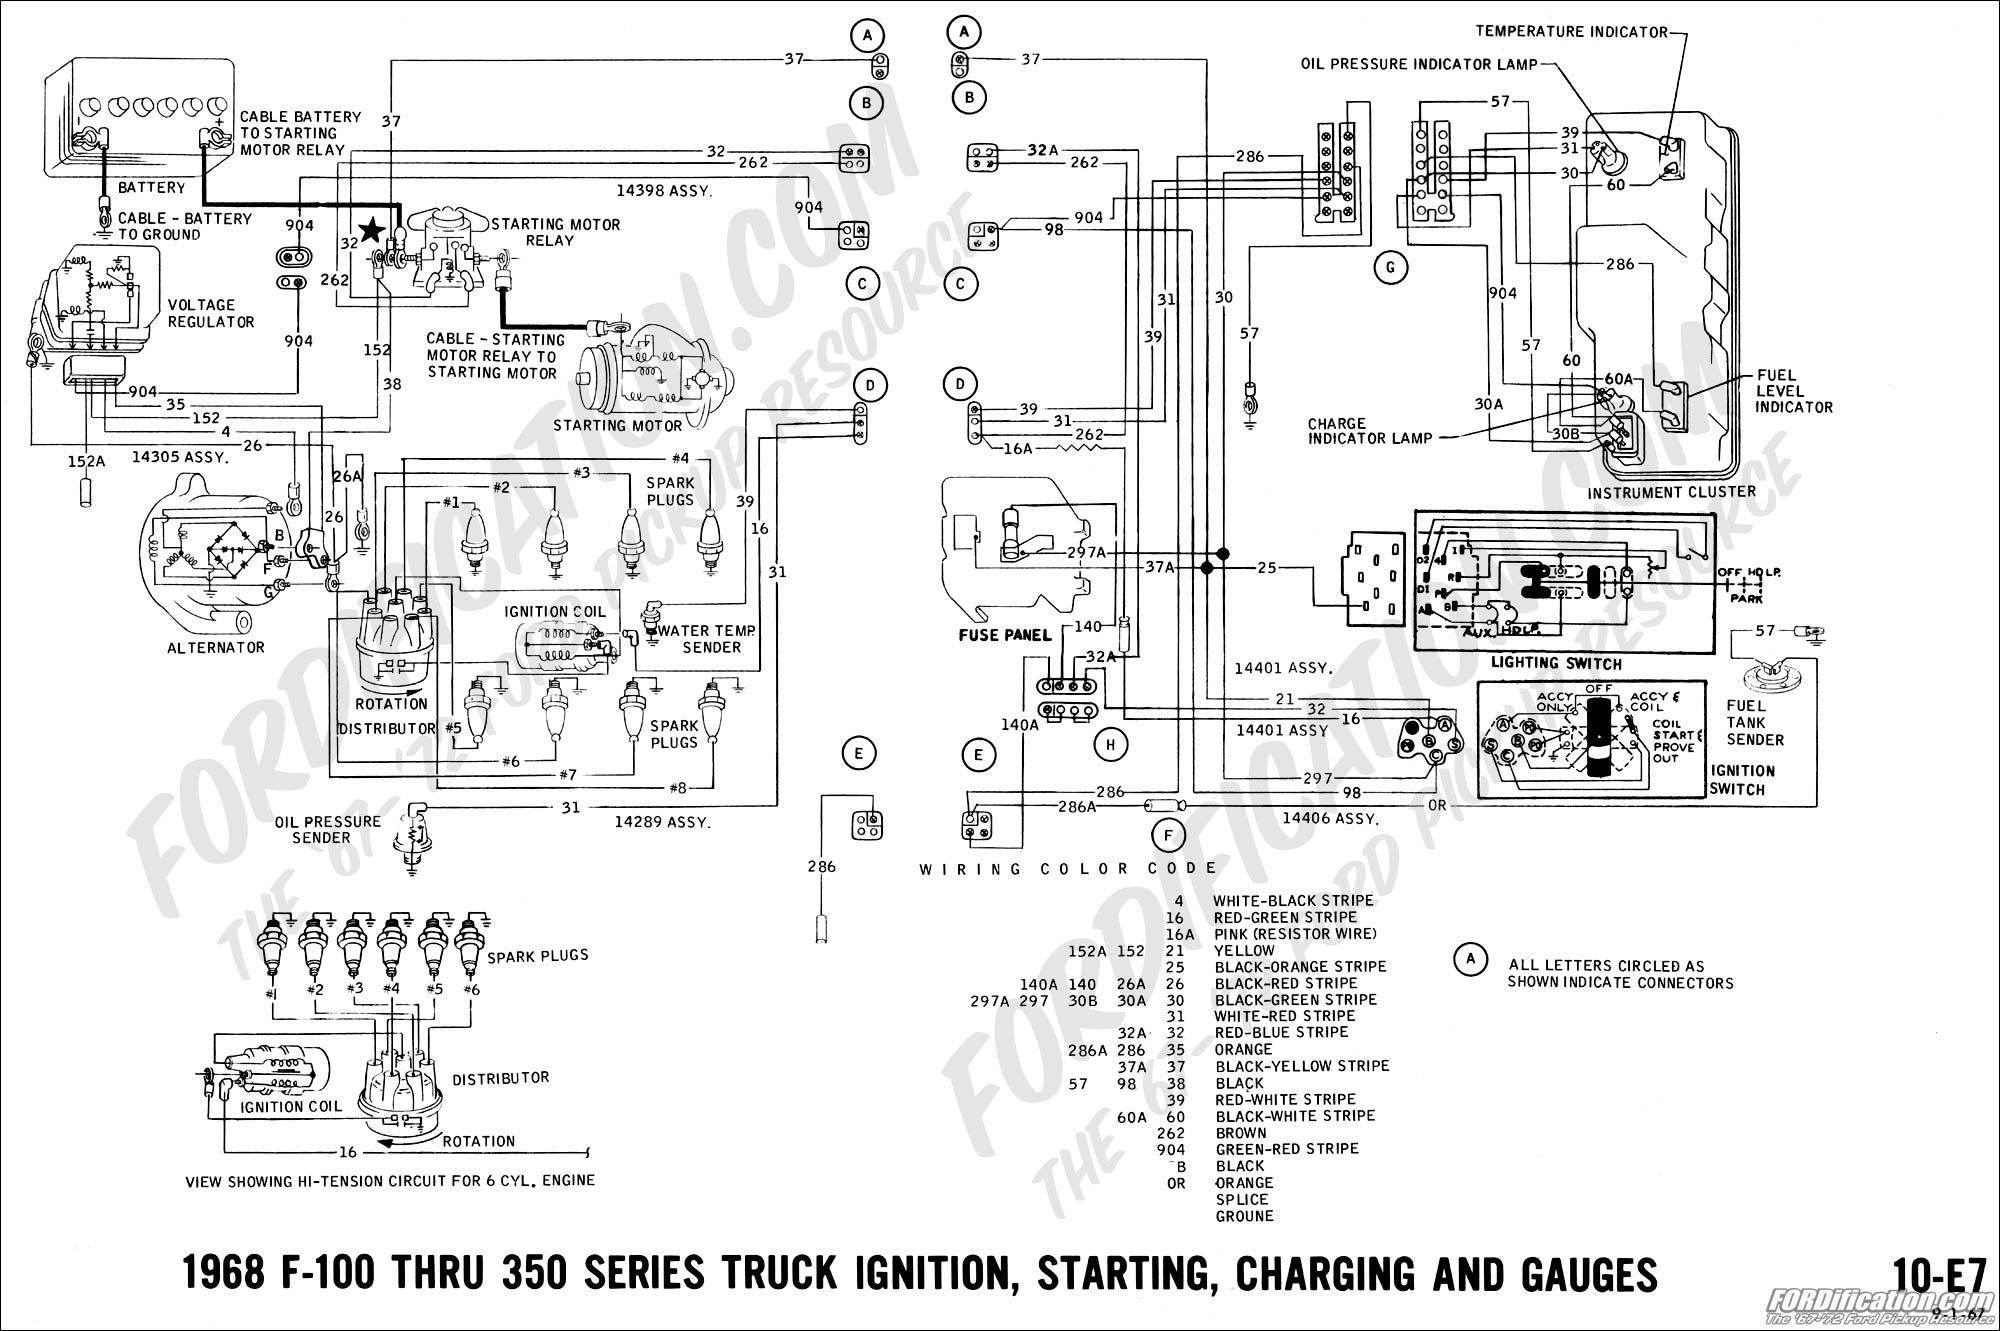 68 09 ford truck technical drawings and schematics section h wiring GM Neutral Safety Switch Wiring at edmiracle.co